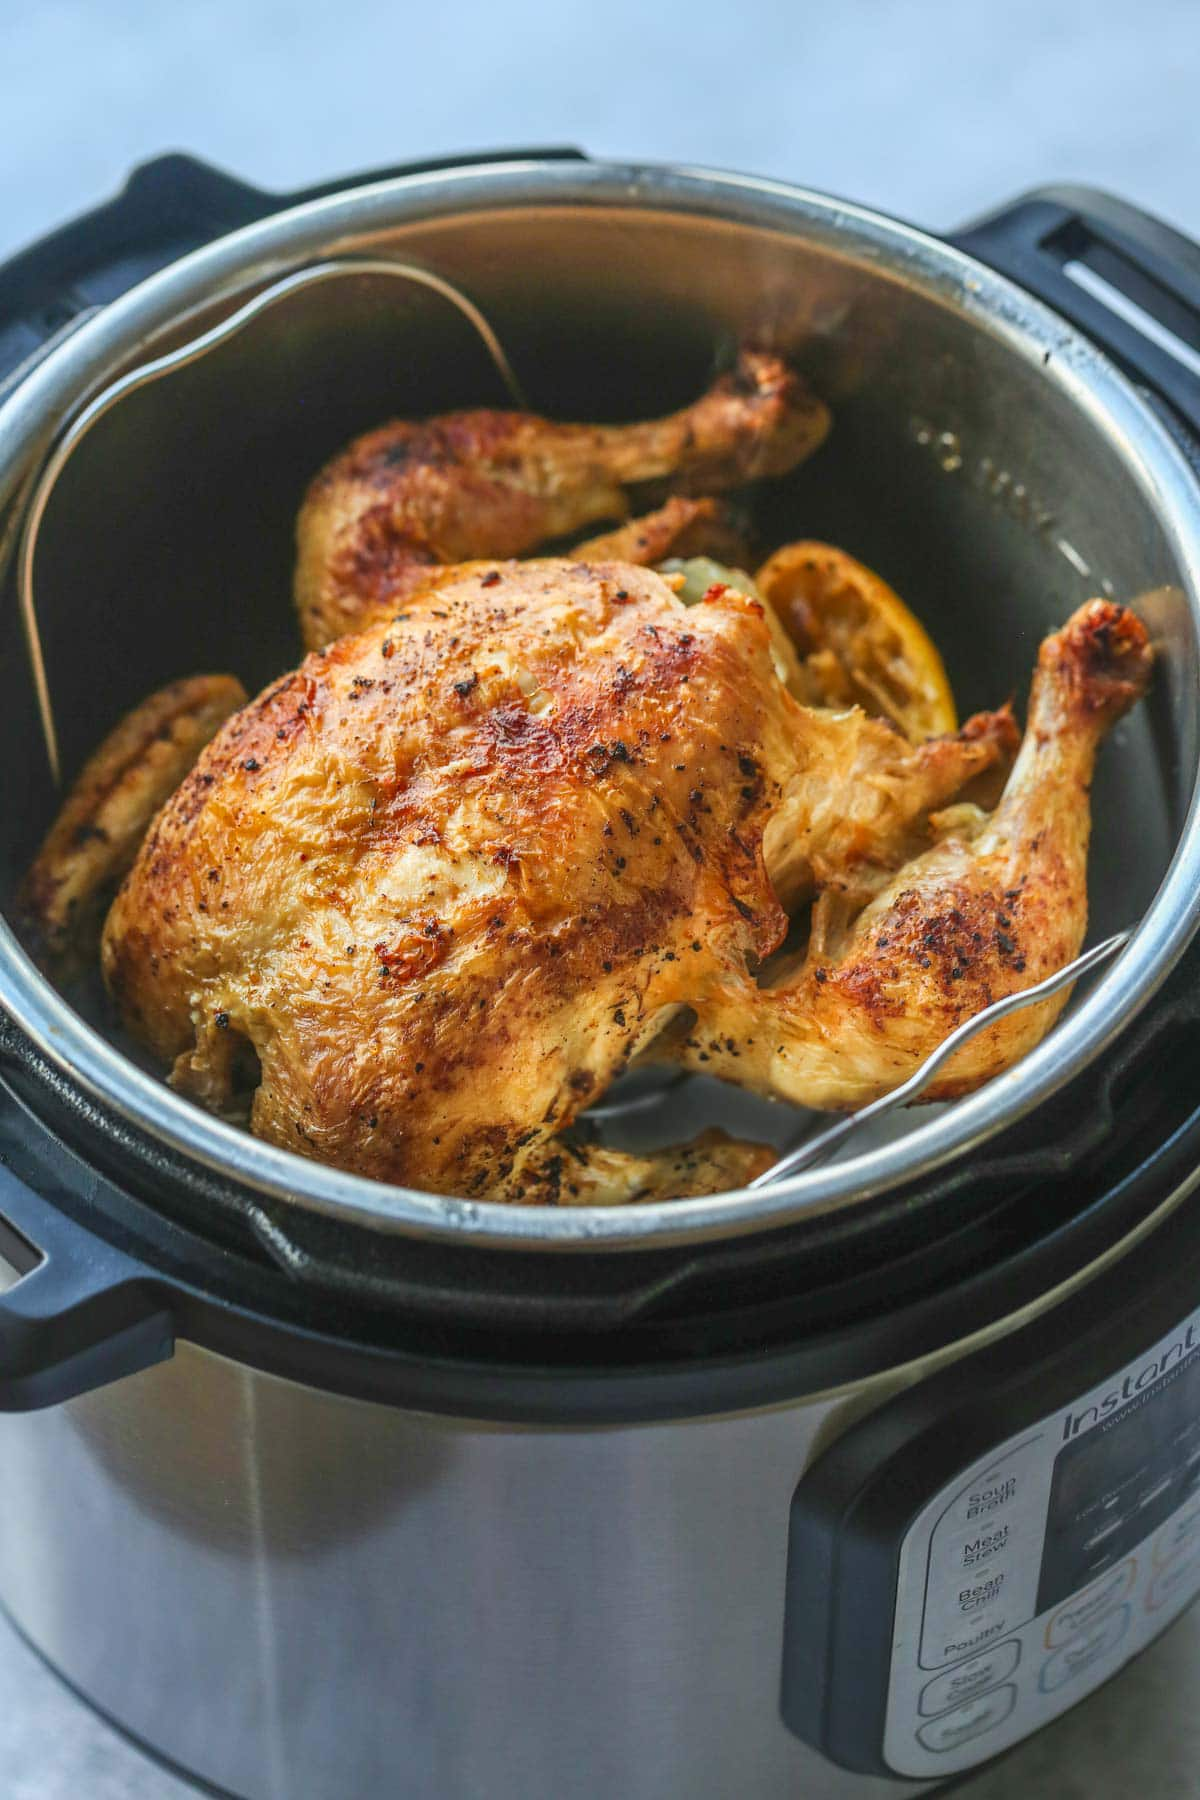 A whole cooked chicken inside the Instant Pot.